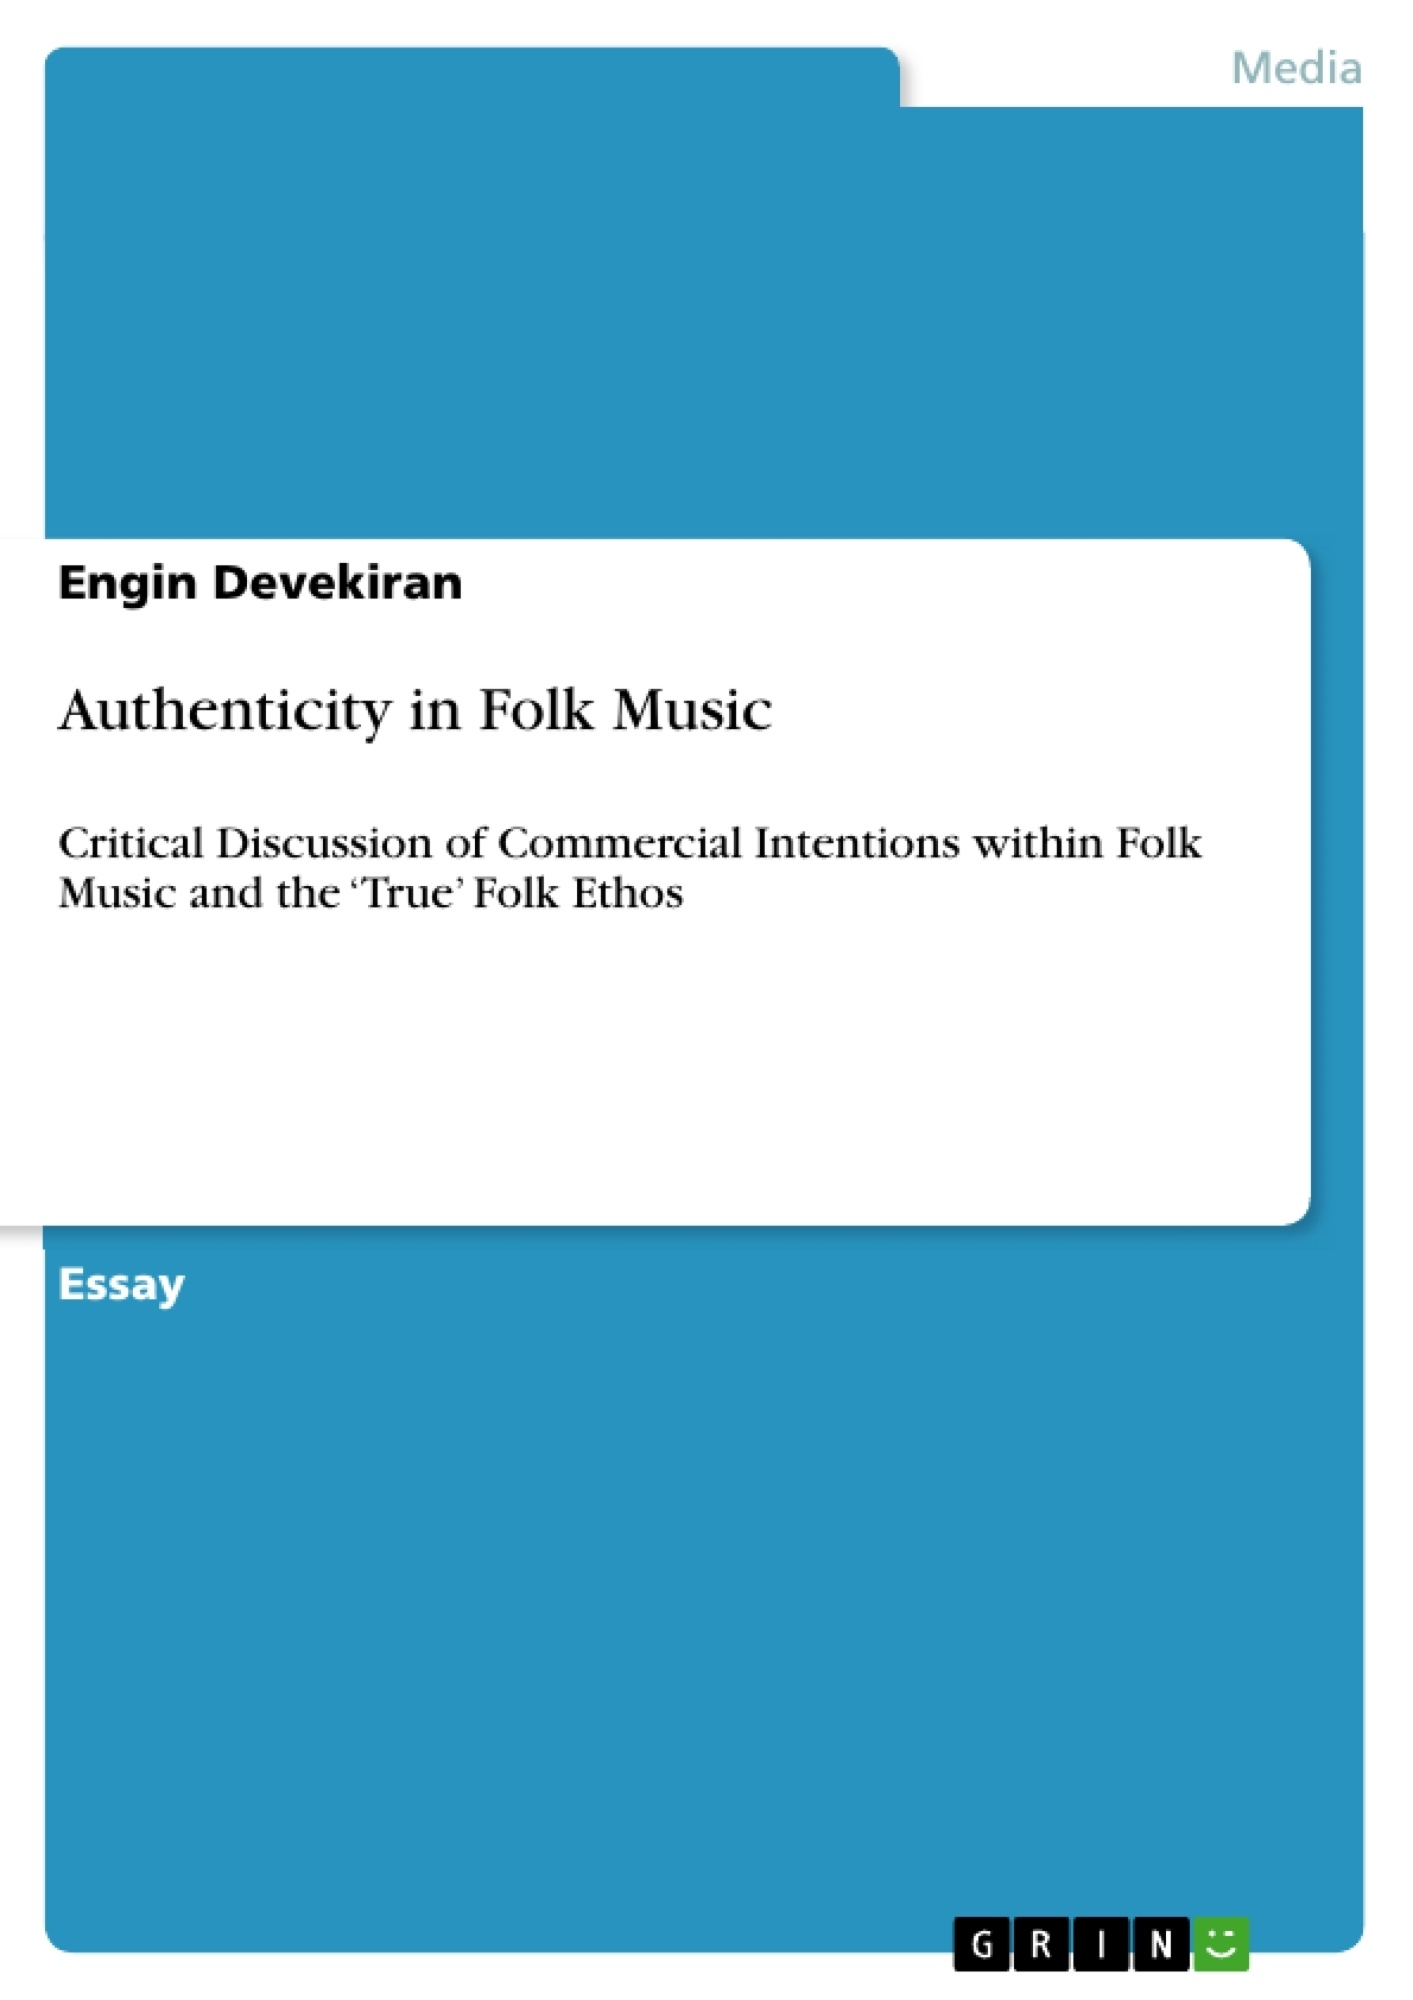 Title: Authenticity in Folk Music